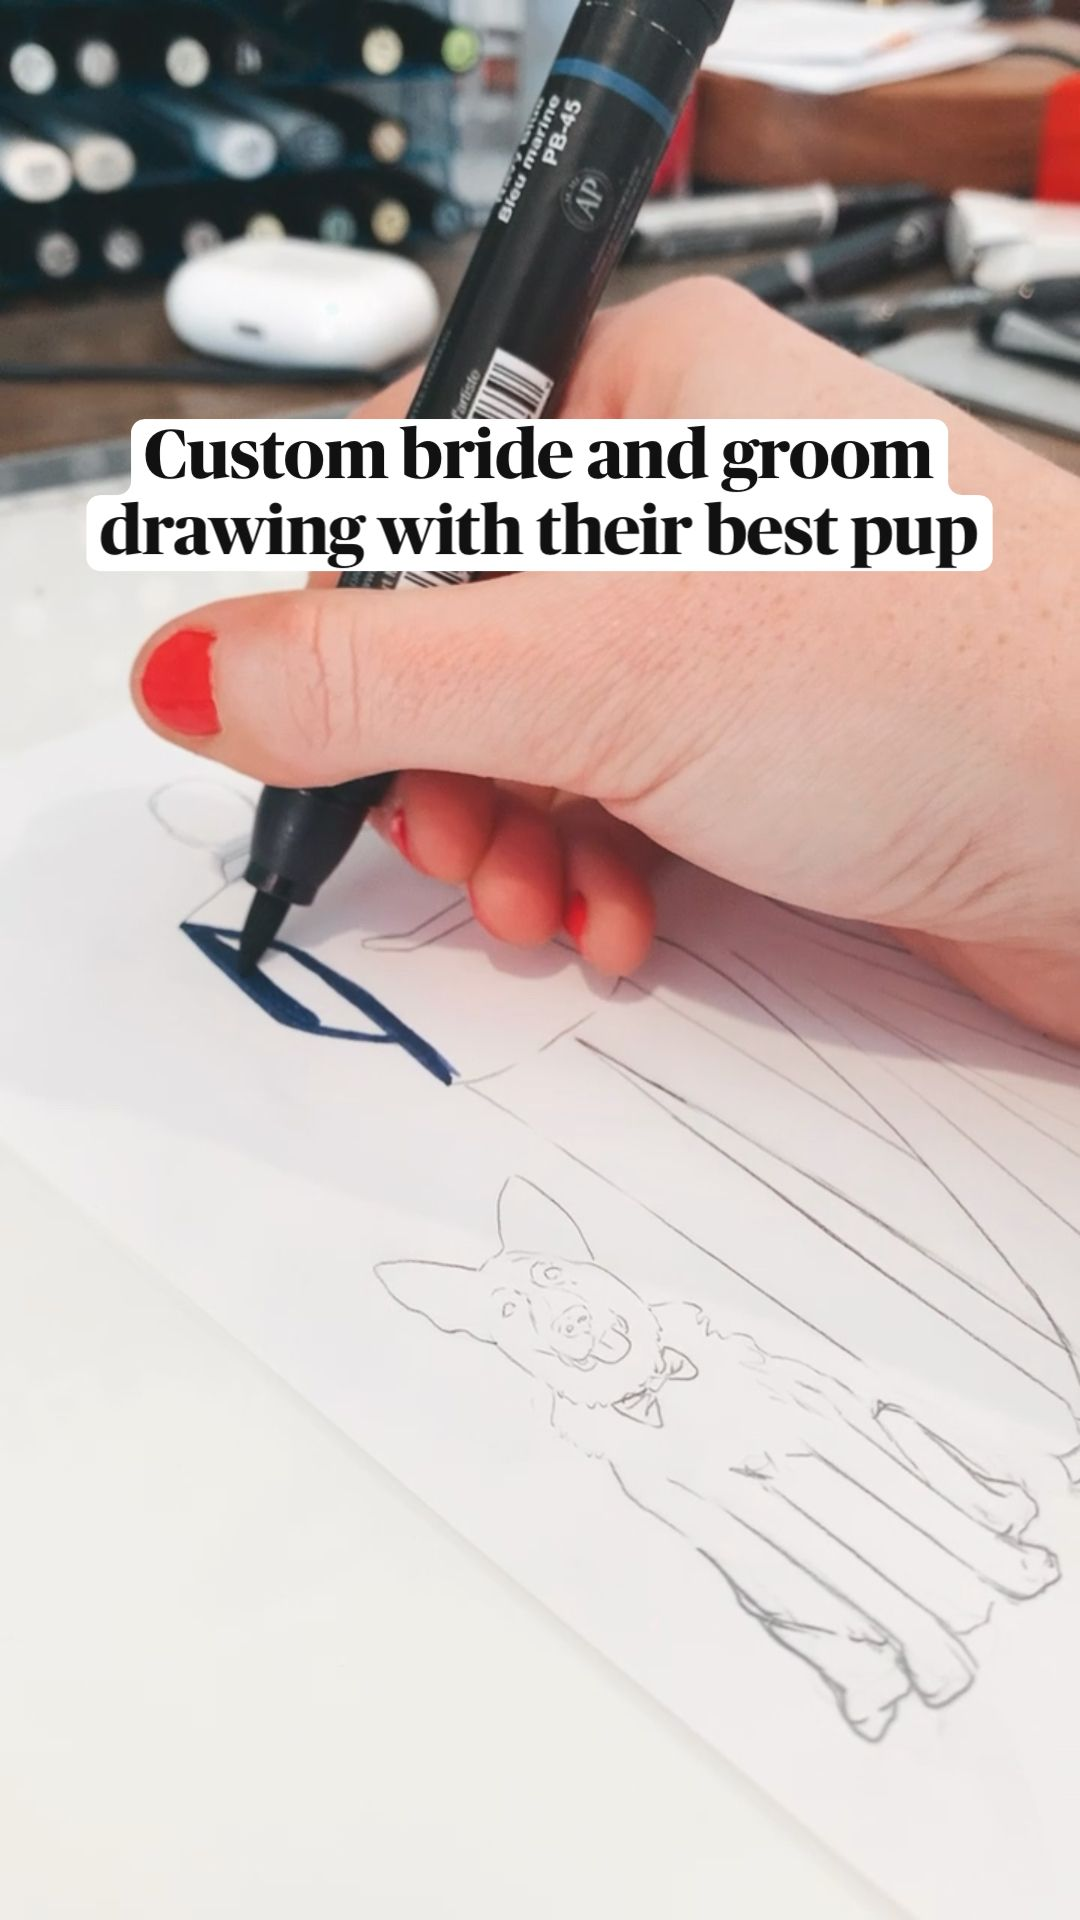 Custom bride and groom drawing with their best pup